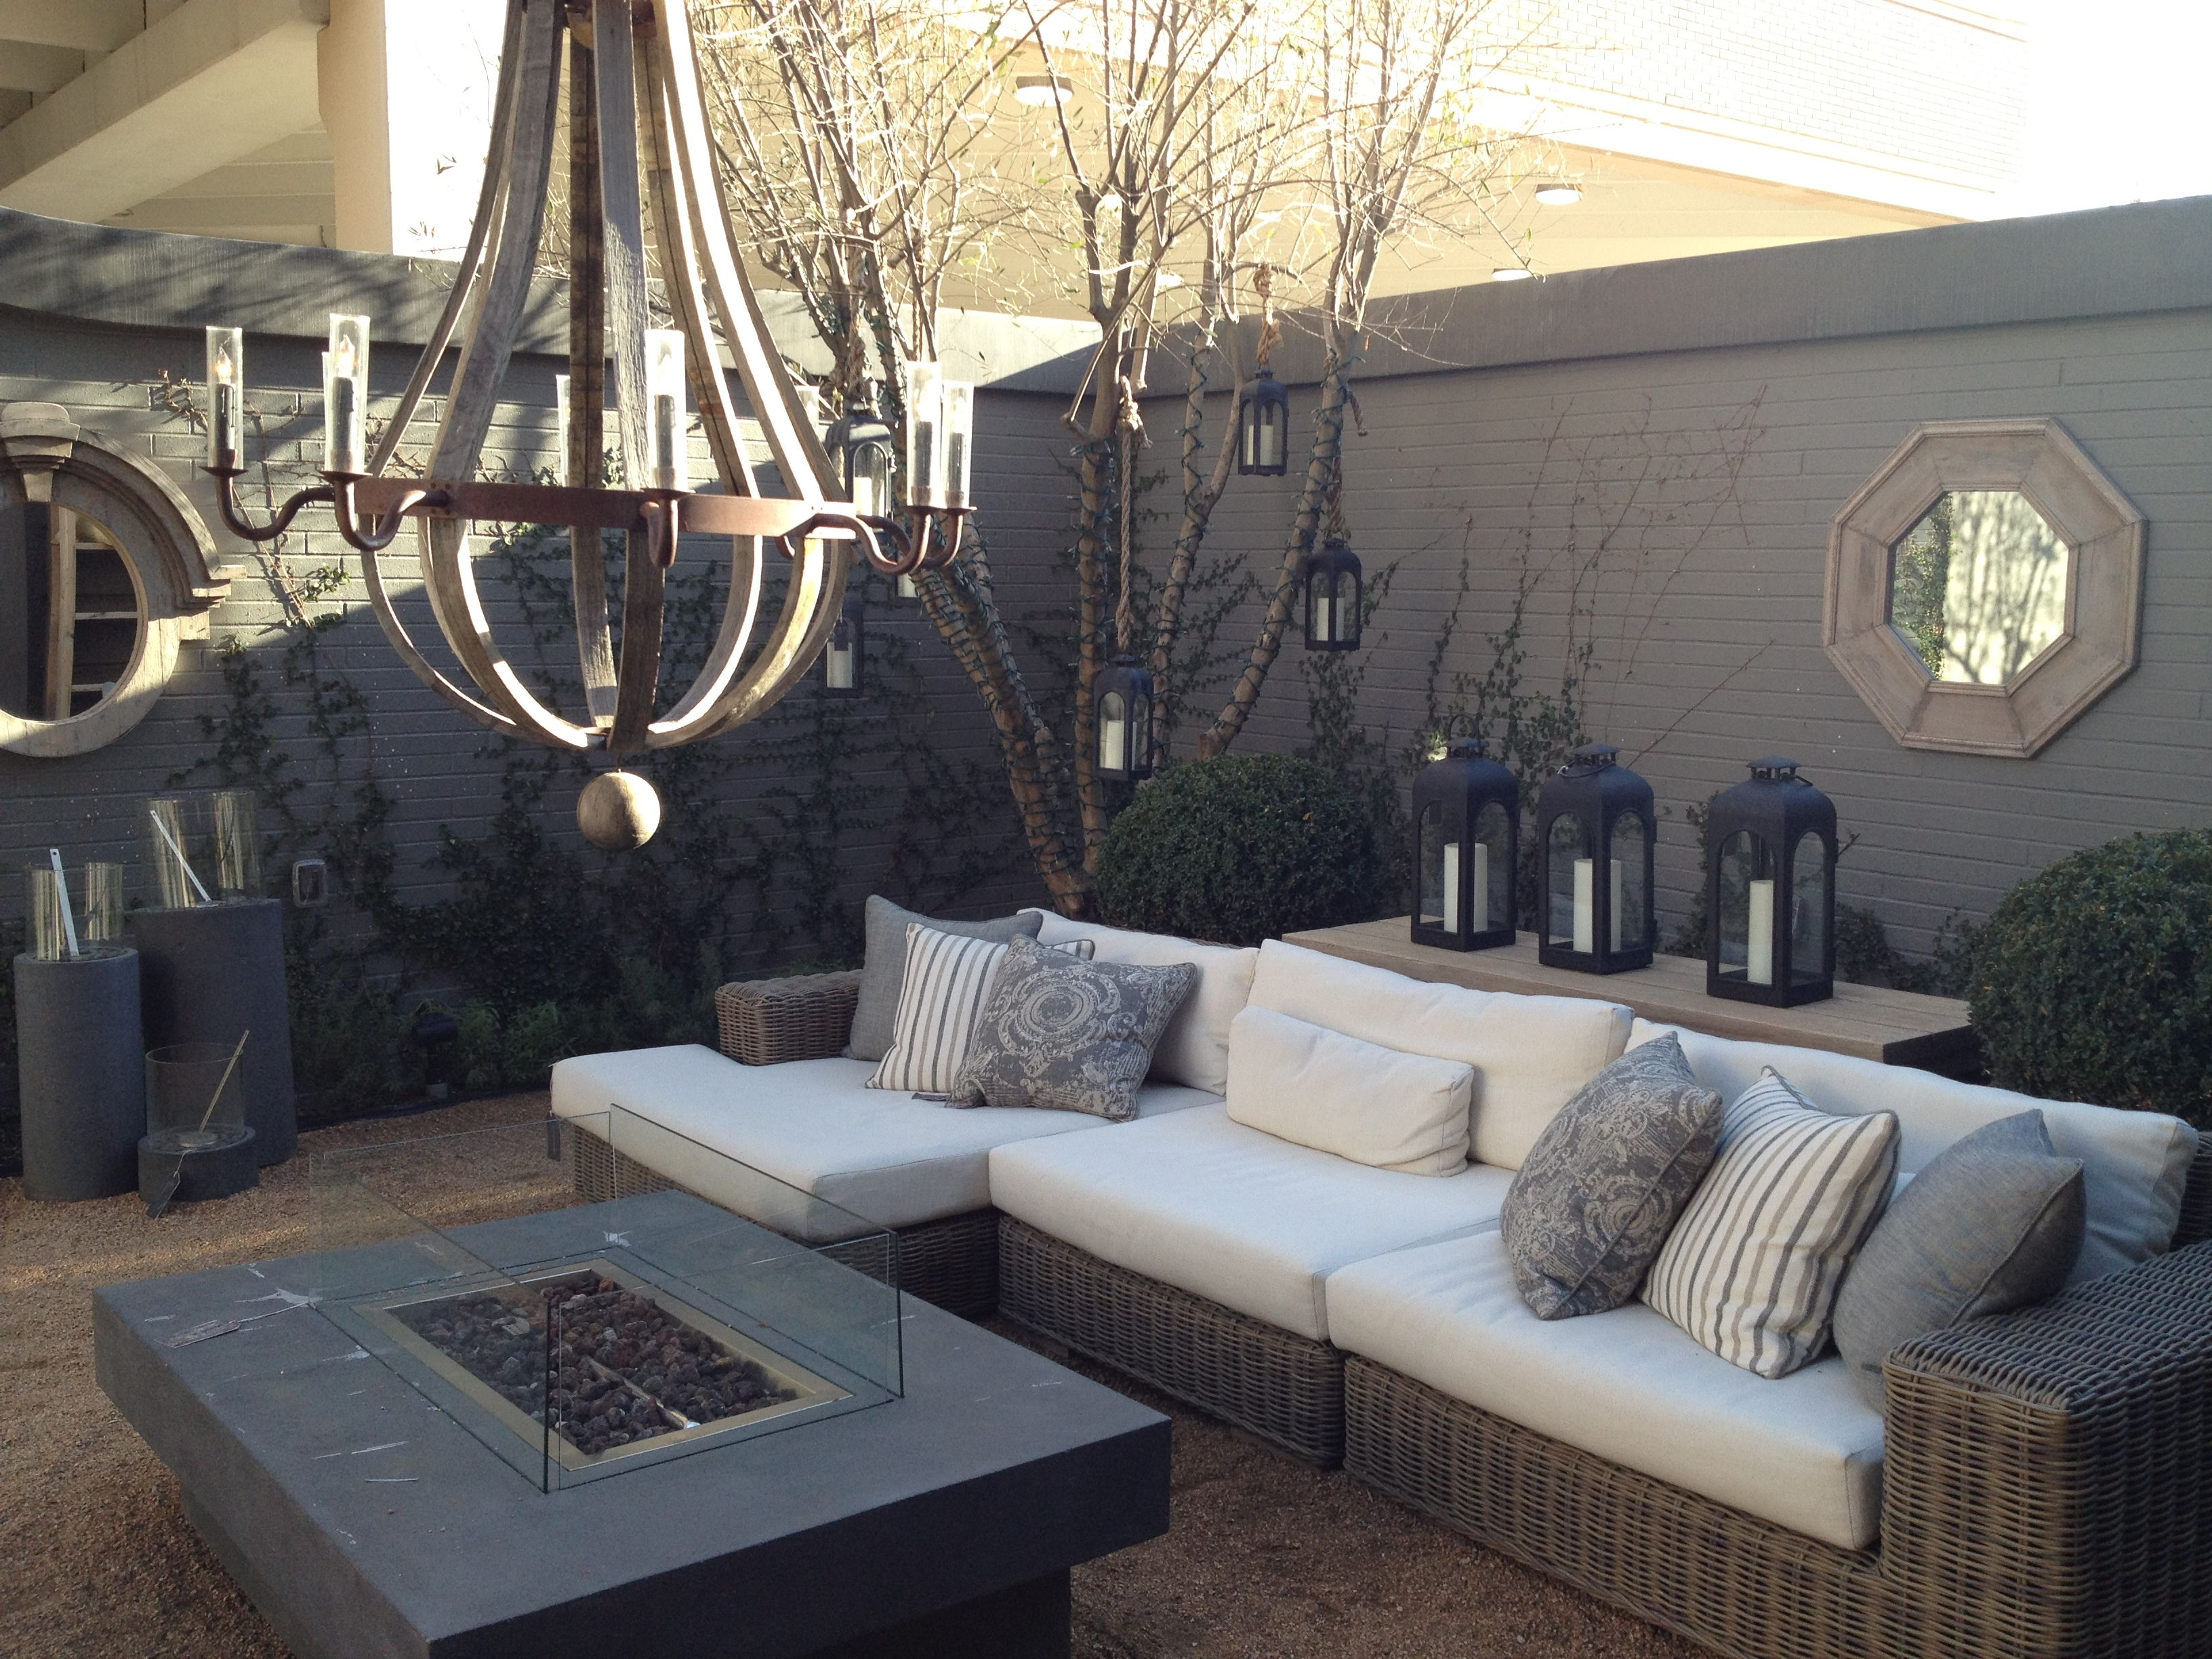 Pin By Muddy Fish Cottage On Garden Inspiration Outdoor Room Furniture Patio Furniture Placement Restoration Hardware Outdoor